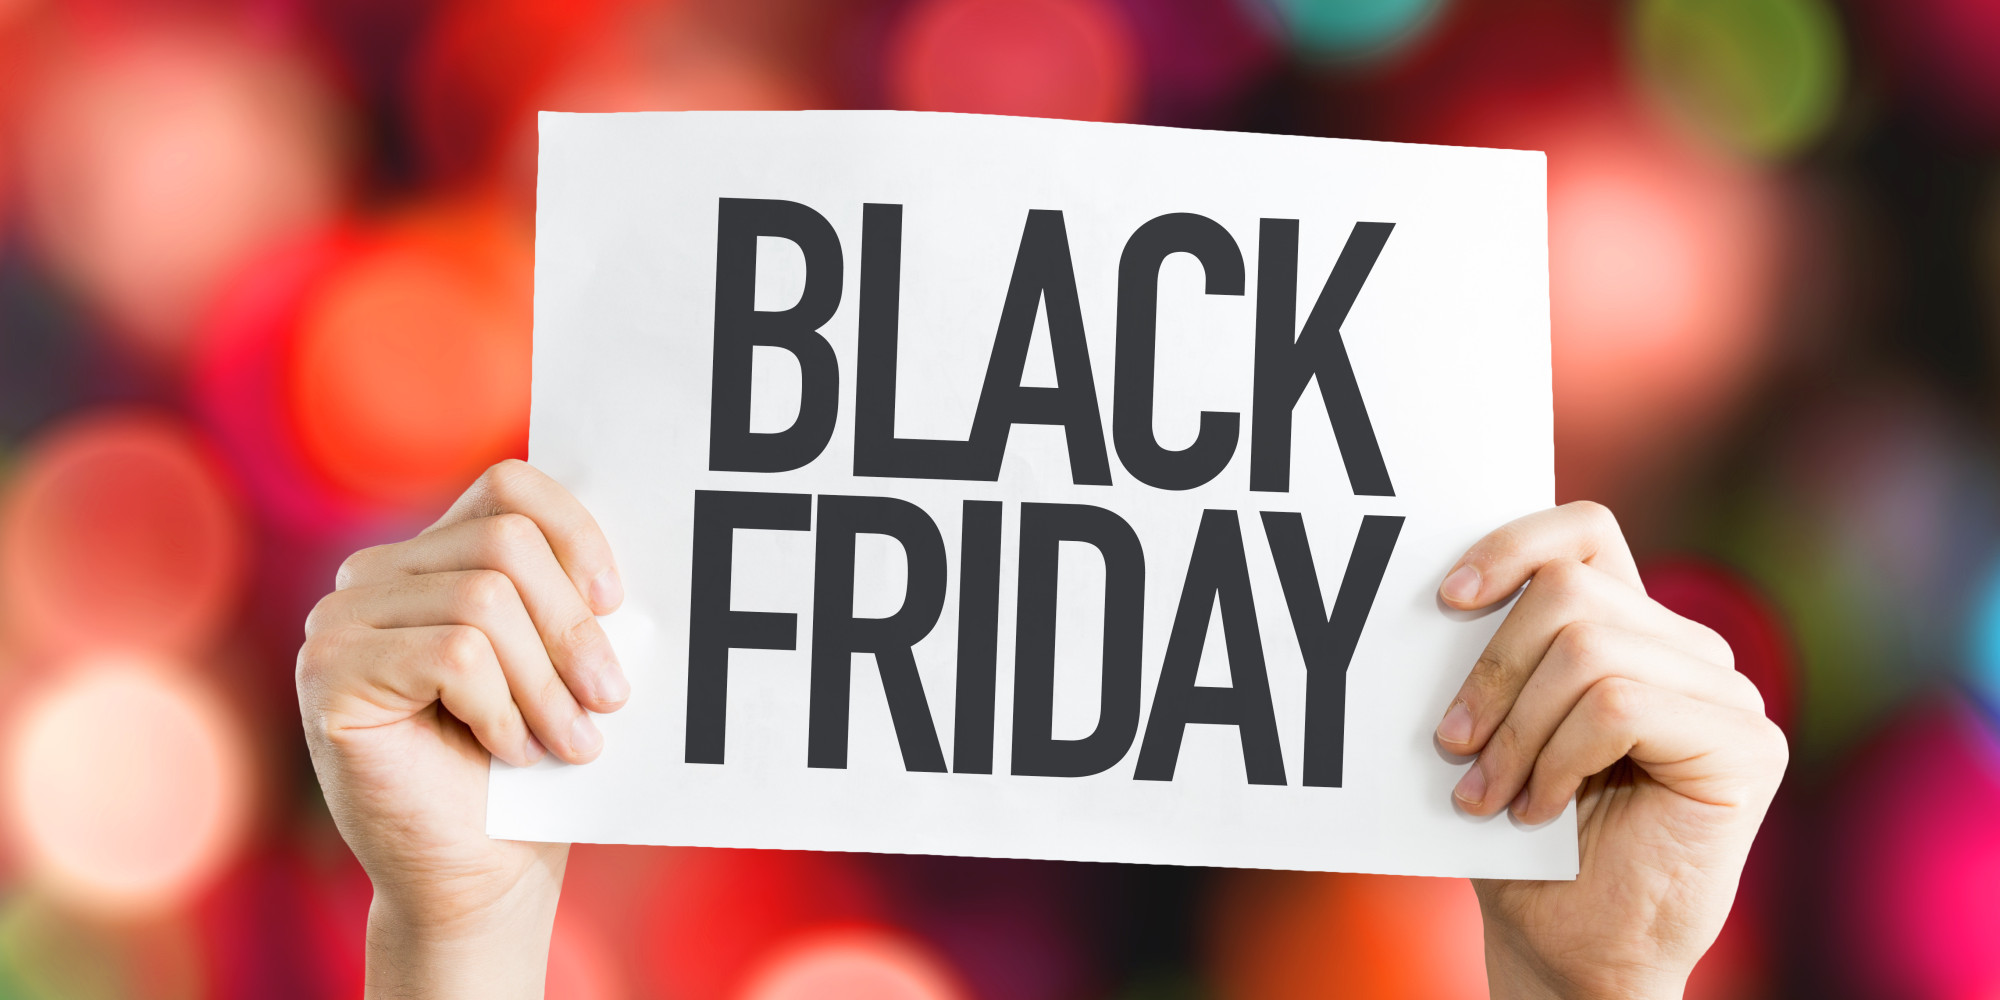 Black Friday's Dirty Marketing Tricks: Watch Out ...